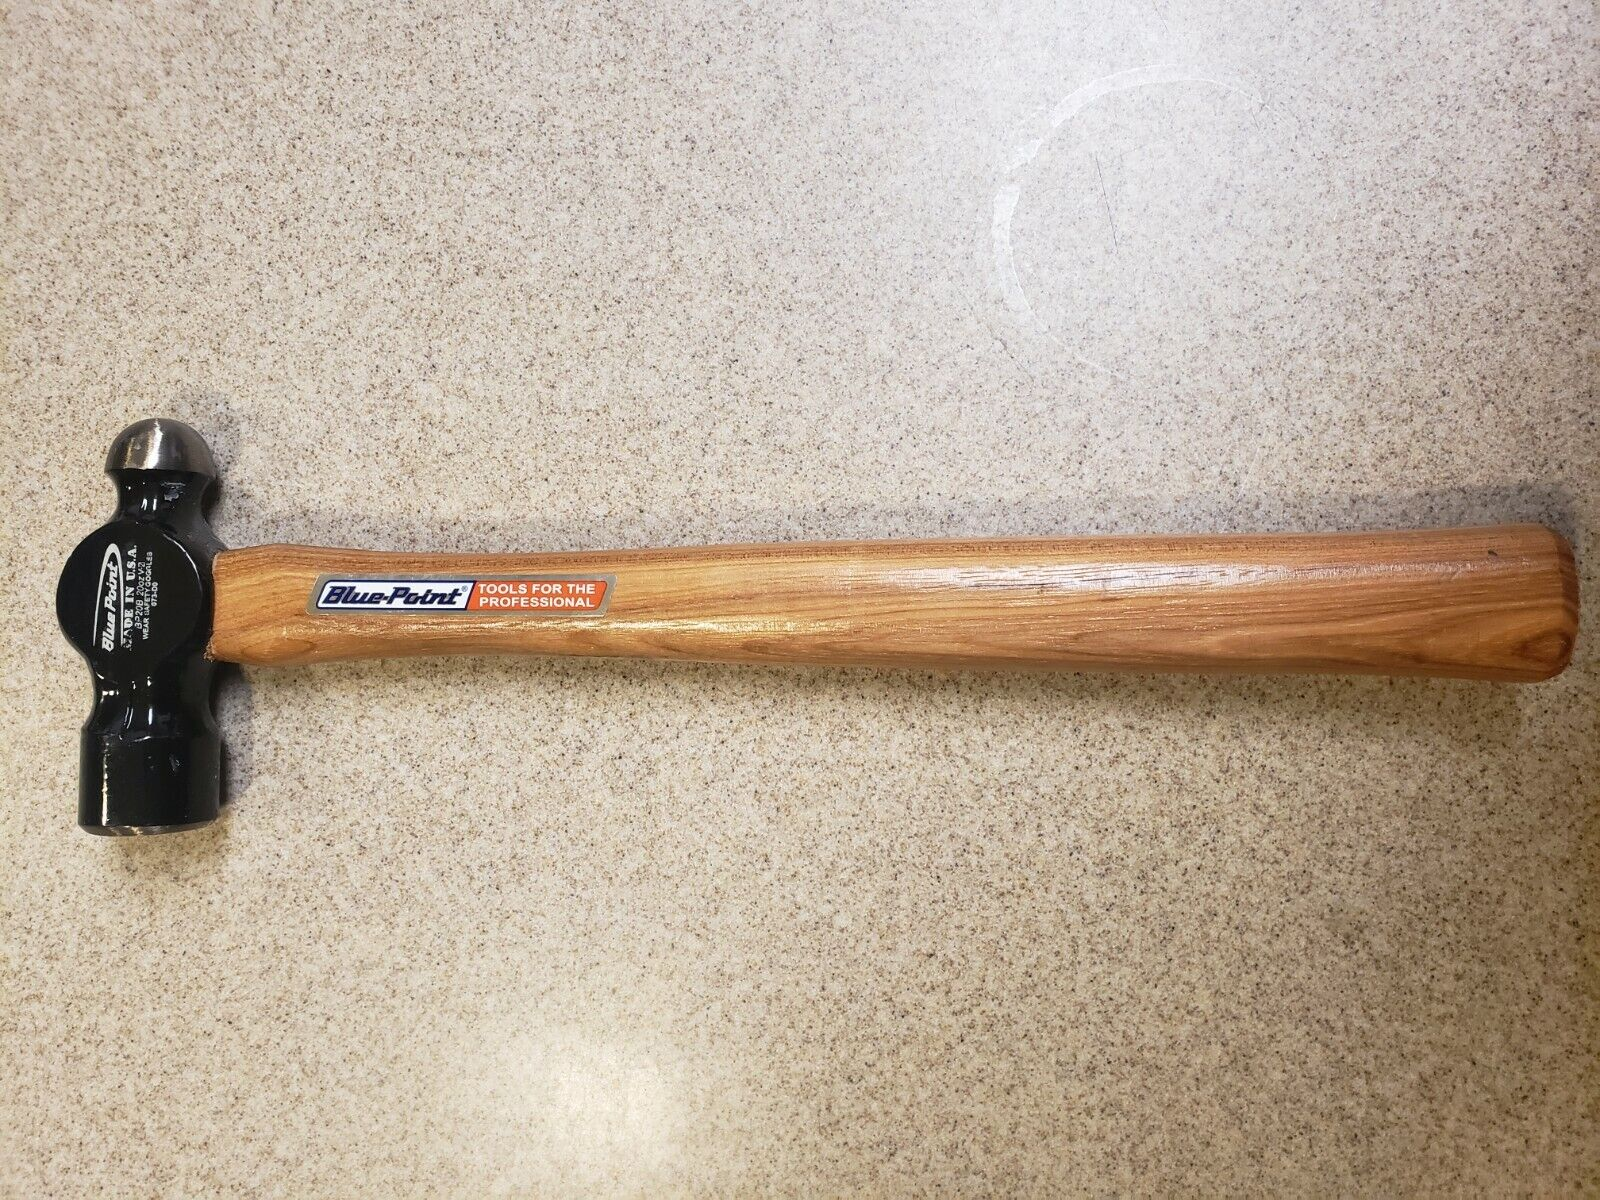 Blue Point 20 Inch 78 Oz Dead Blow Hammer B78b For Sale Ebay 48oz highvisual dead blow hammer model: blue point by snap on ball peen hammer bp20b usa 20oz hickory handle